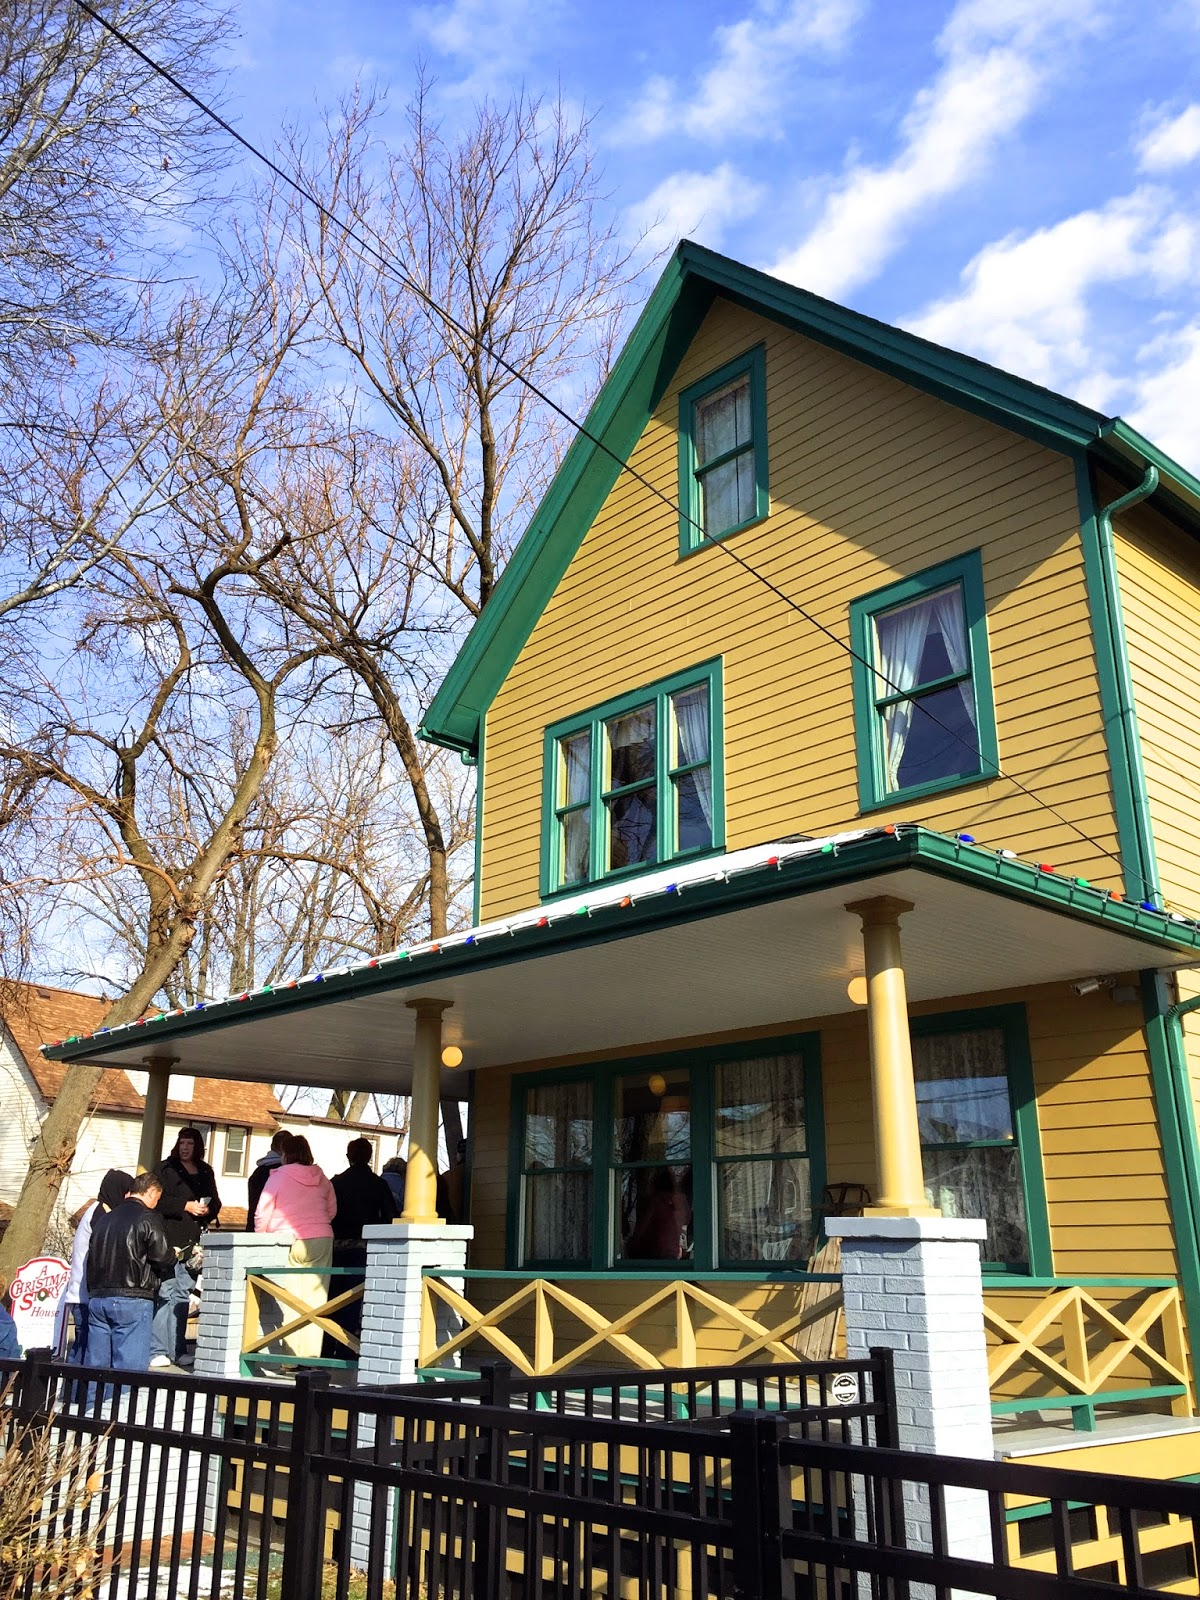 day trip a christmas story house museum - Christmas Story House